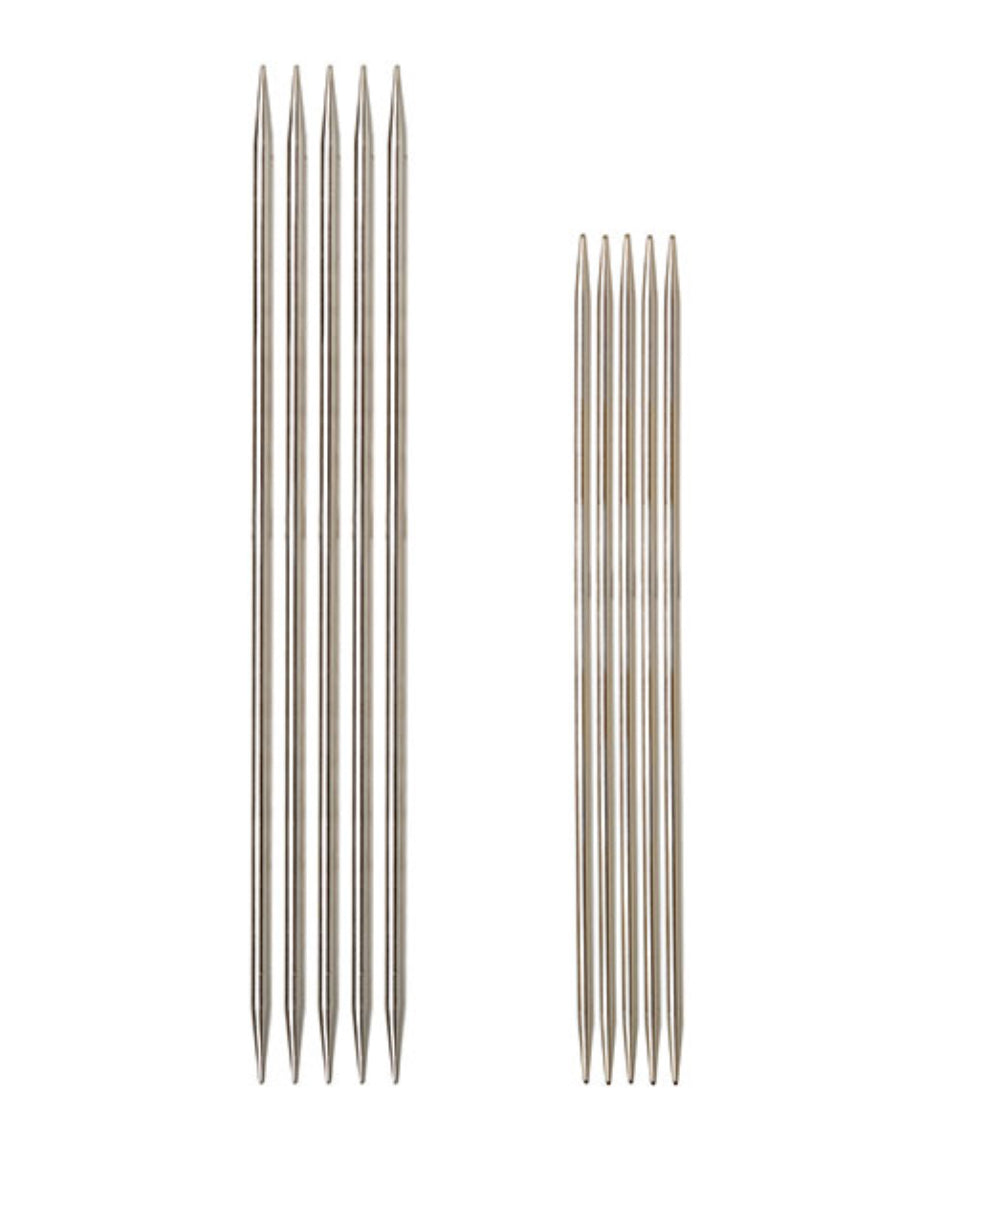 "Knit Picks Nickel Plated Double Pointed Needles - 6"" (15cm)"